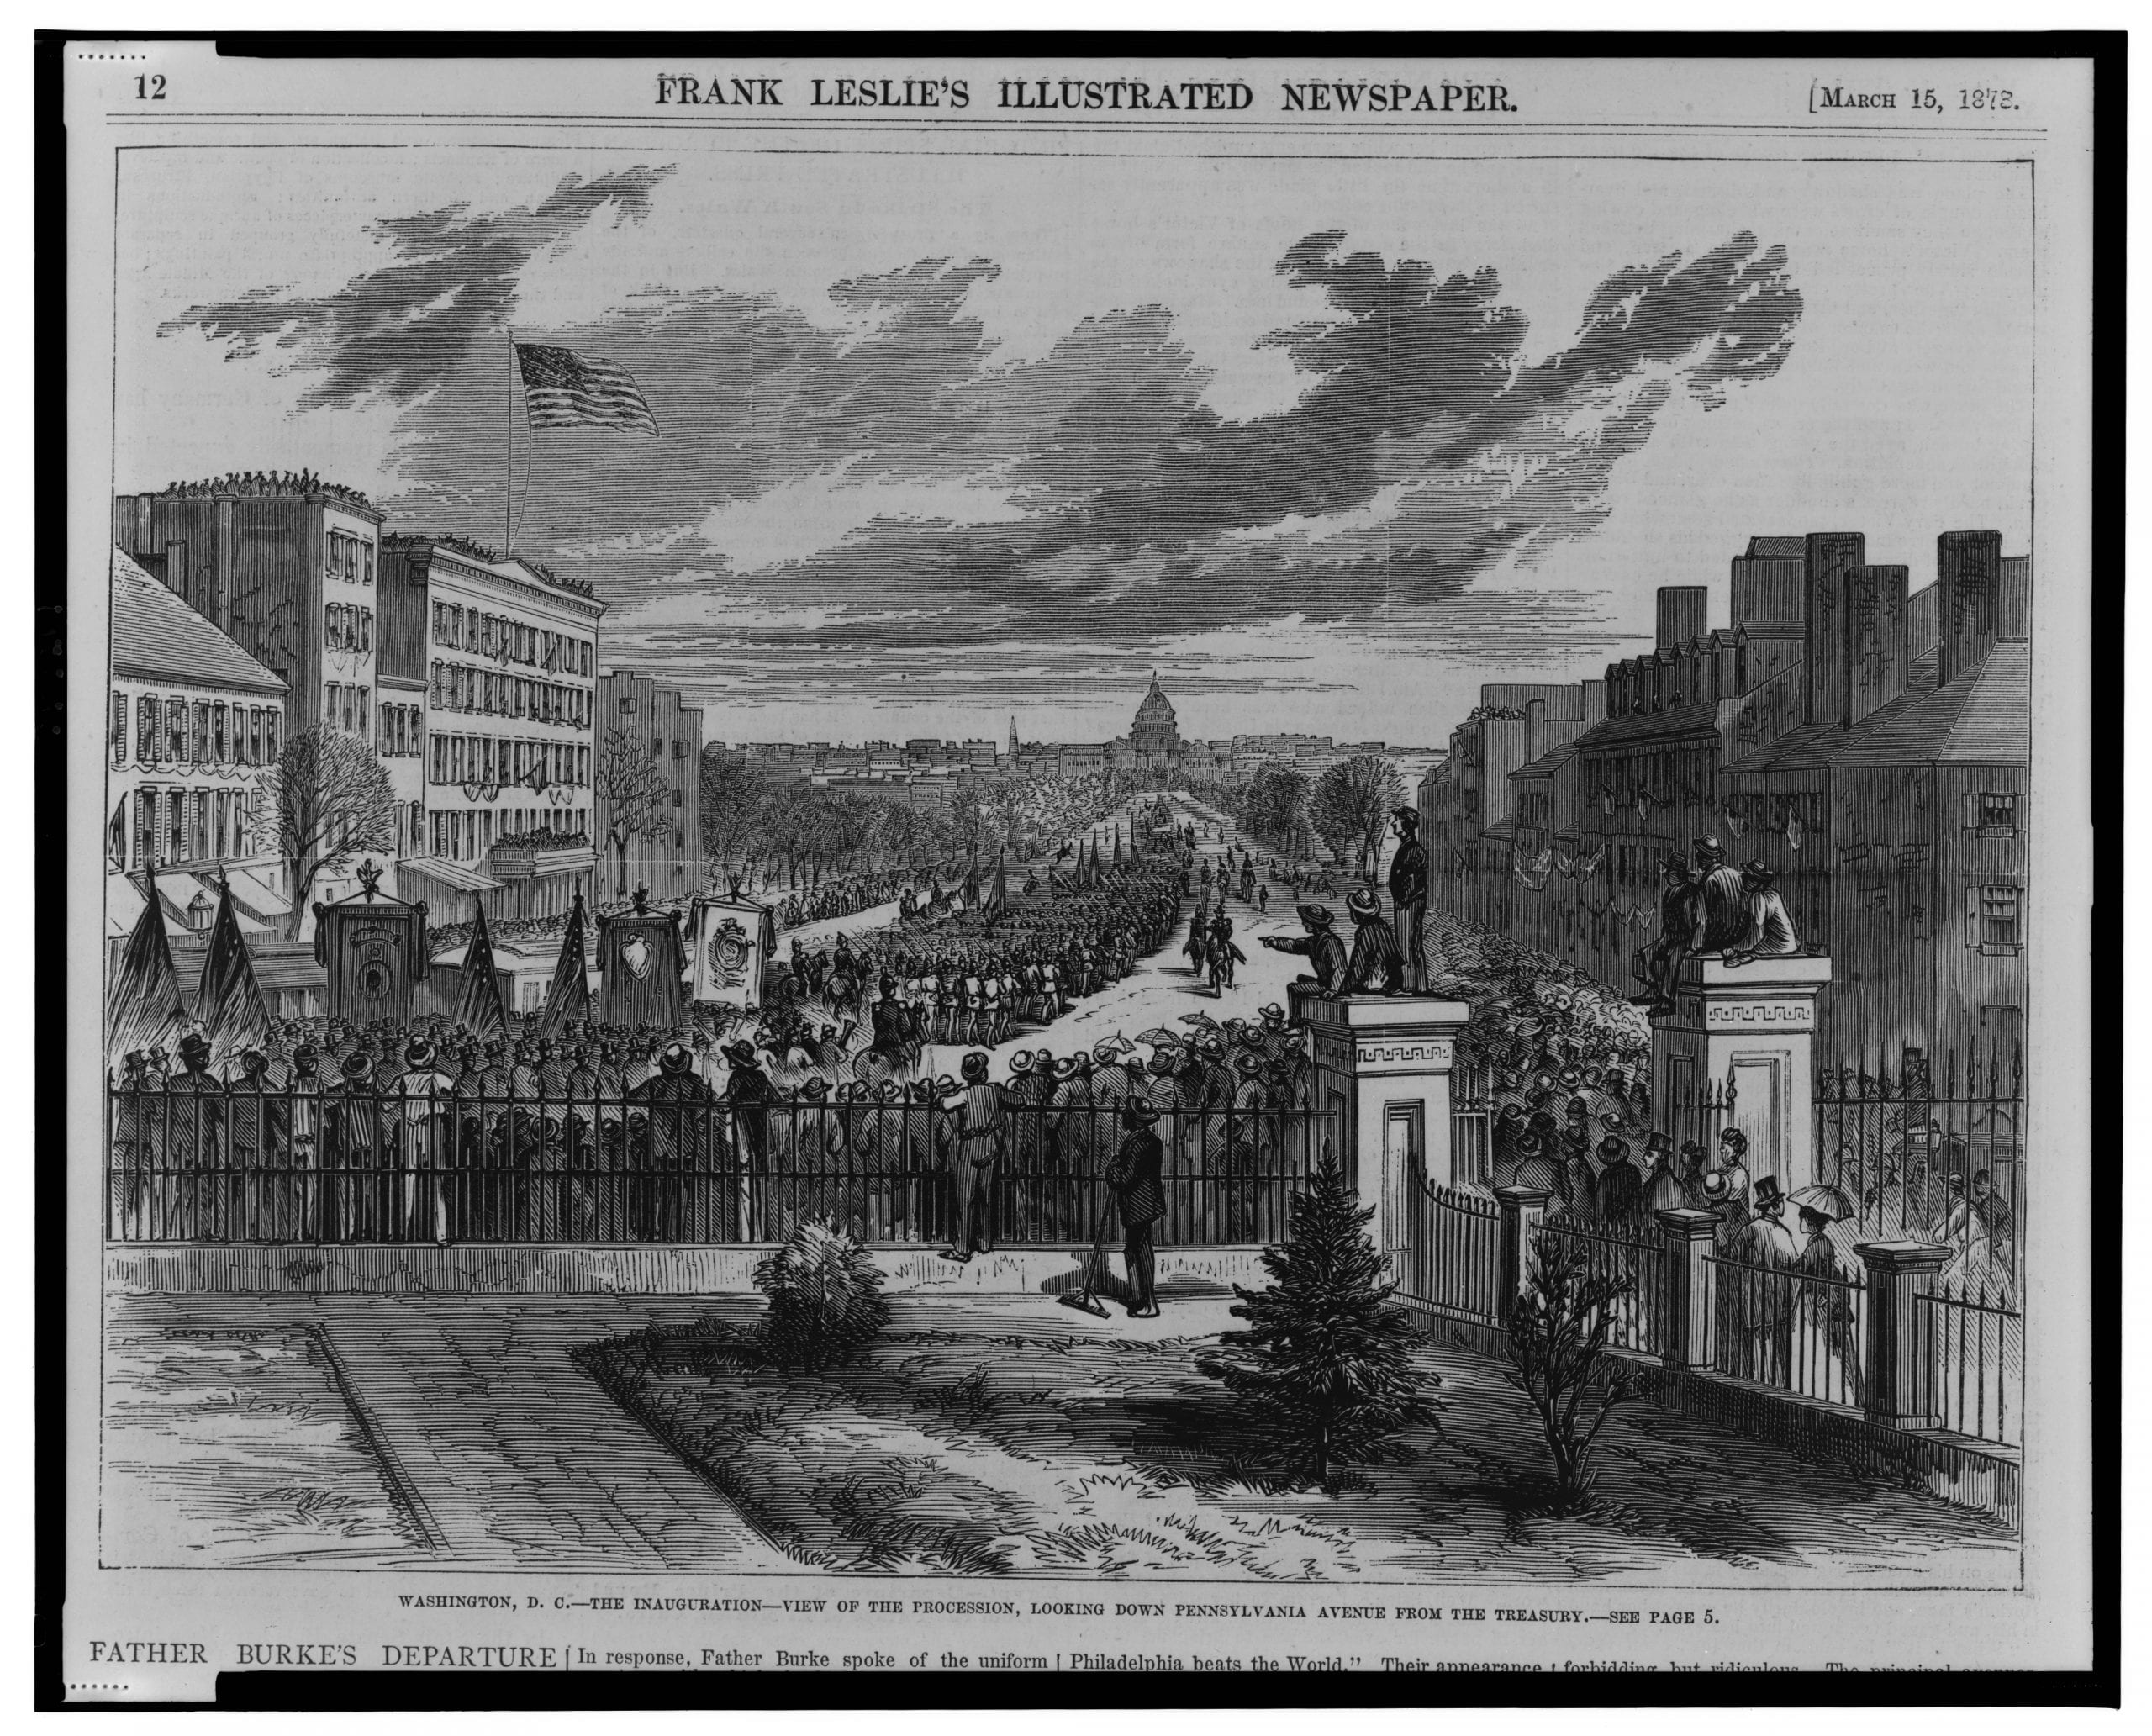 1873 Inauguration of Ulysses S. Grant